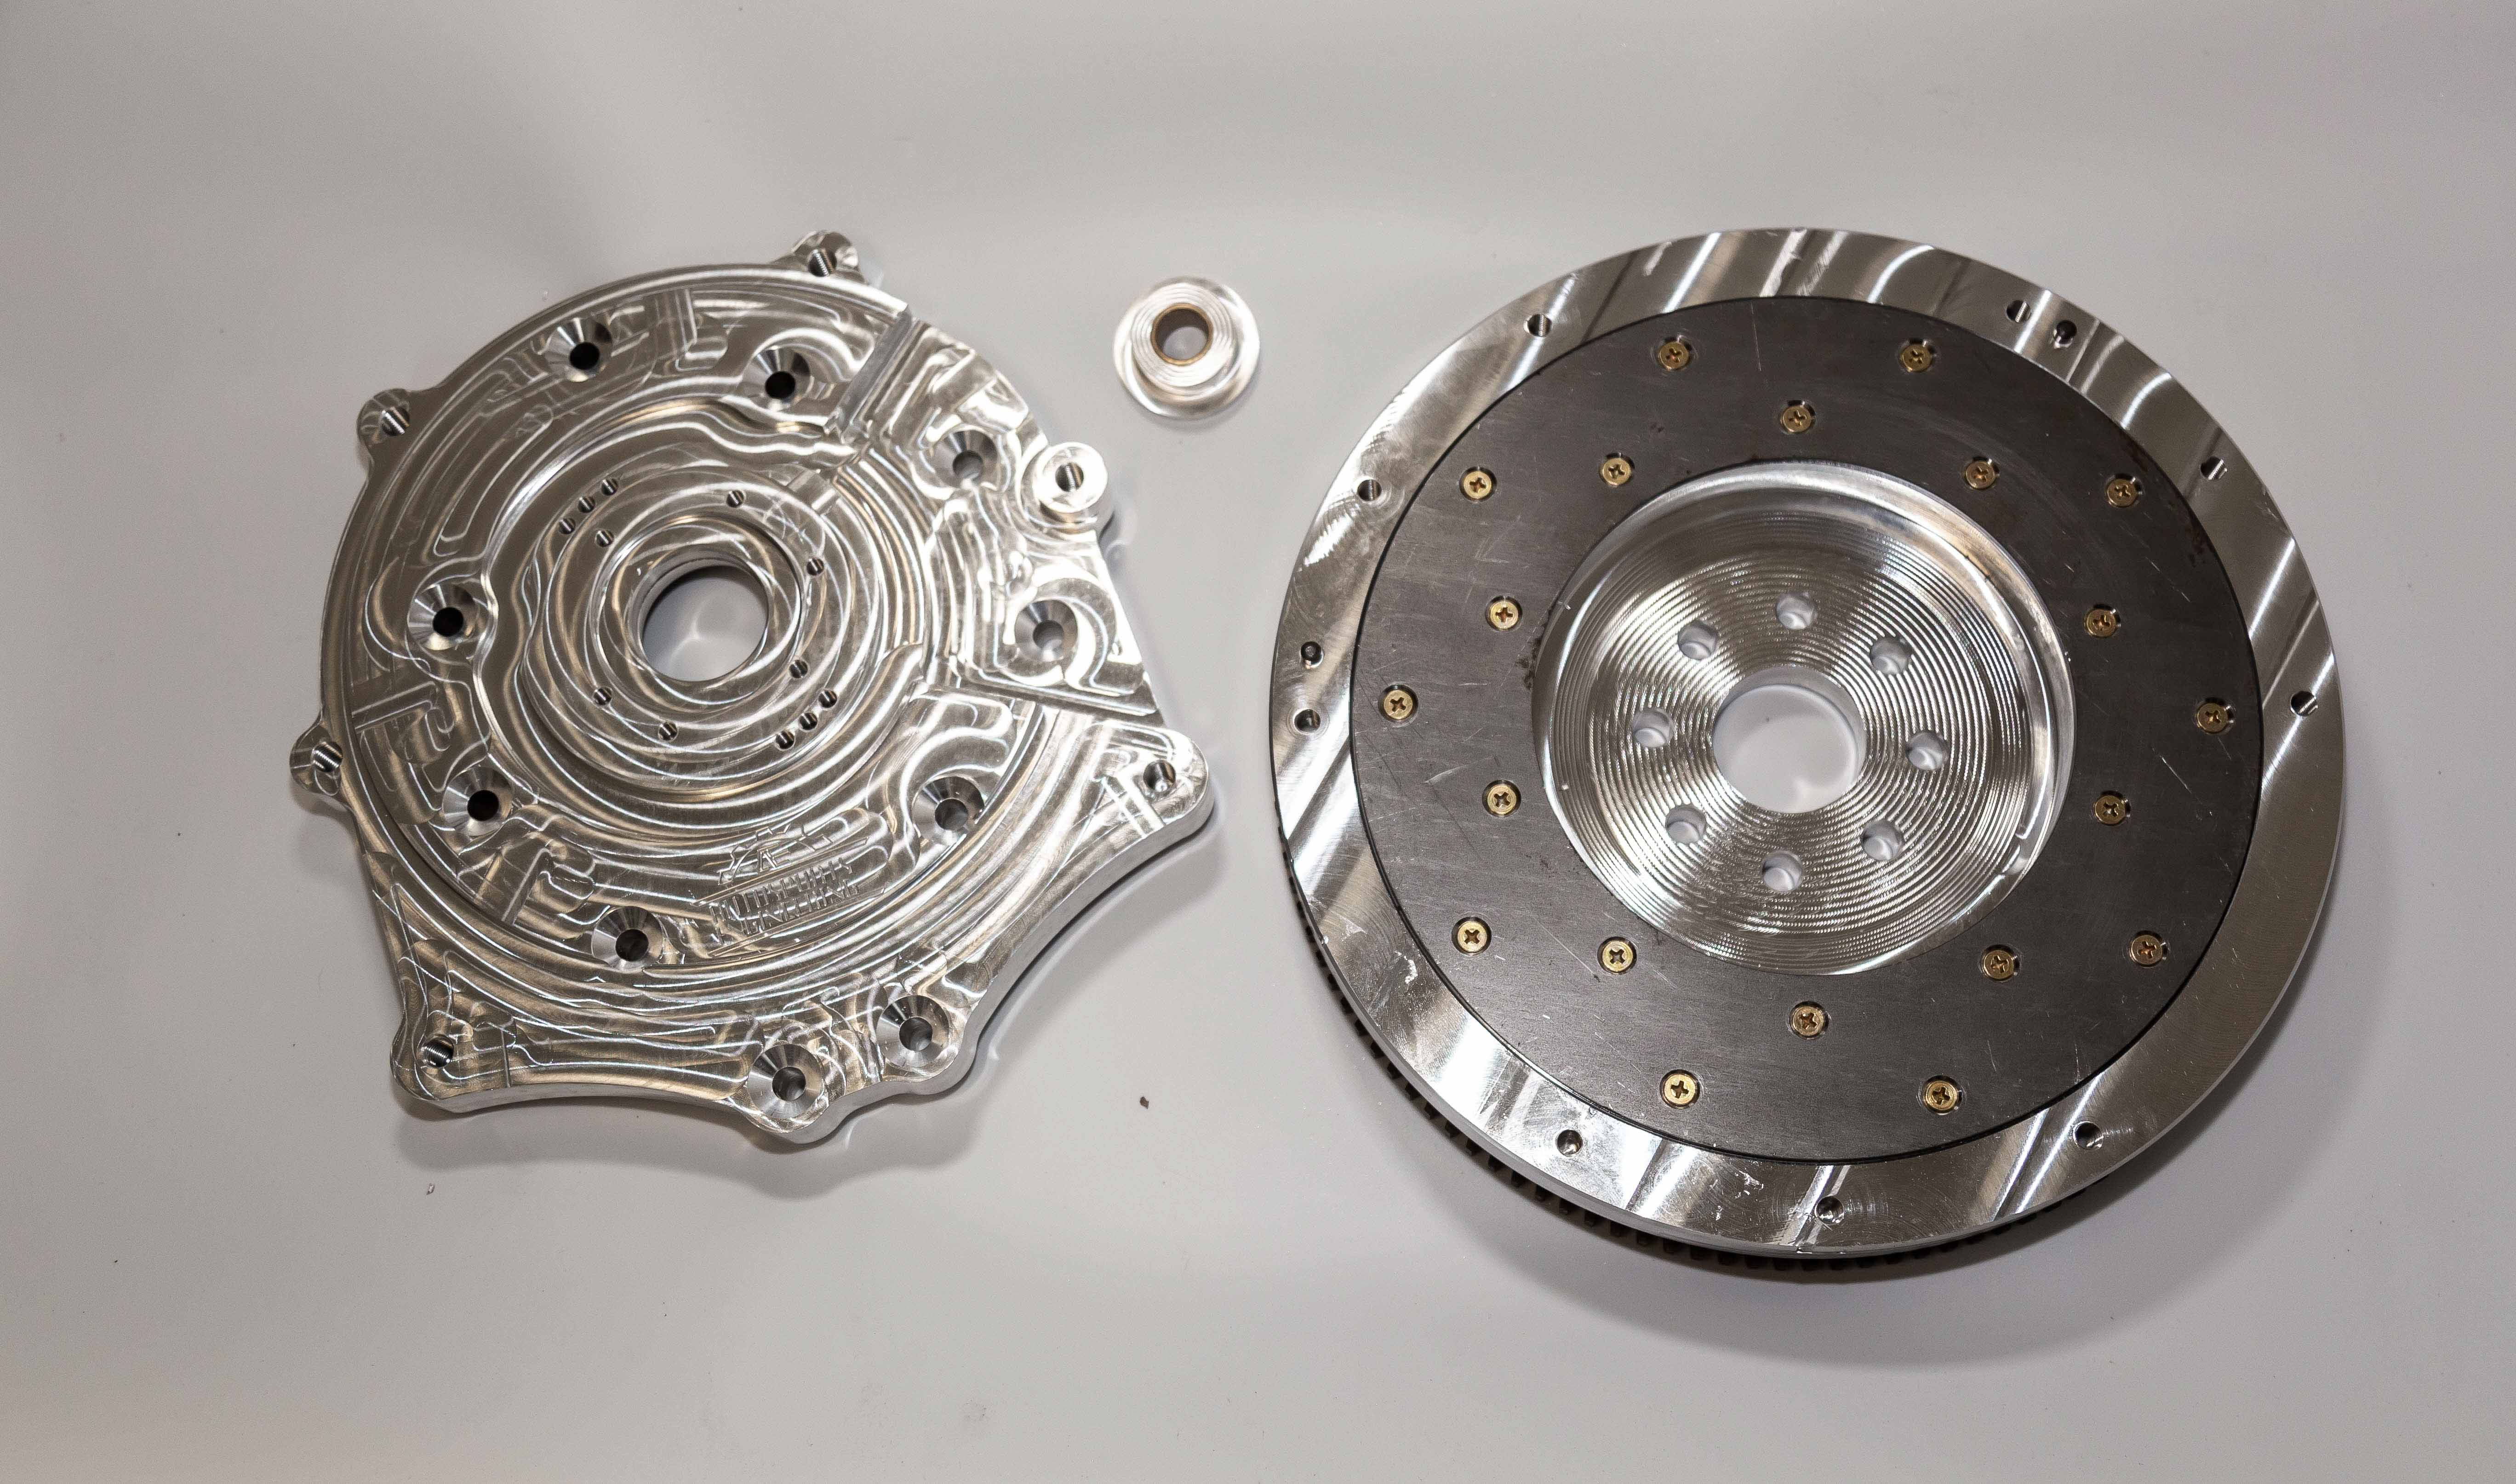 Autosports Engineering 2JZGTE 2JZ 1JZ 2JZGE Engine to 350Z CD009 6-speed  Transmission Adapter & Flywheel Combo